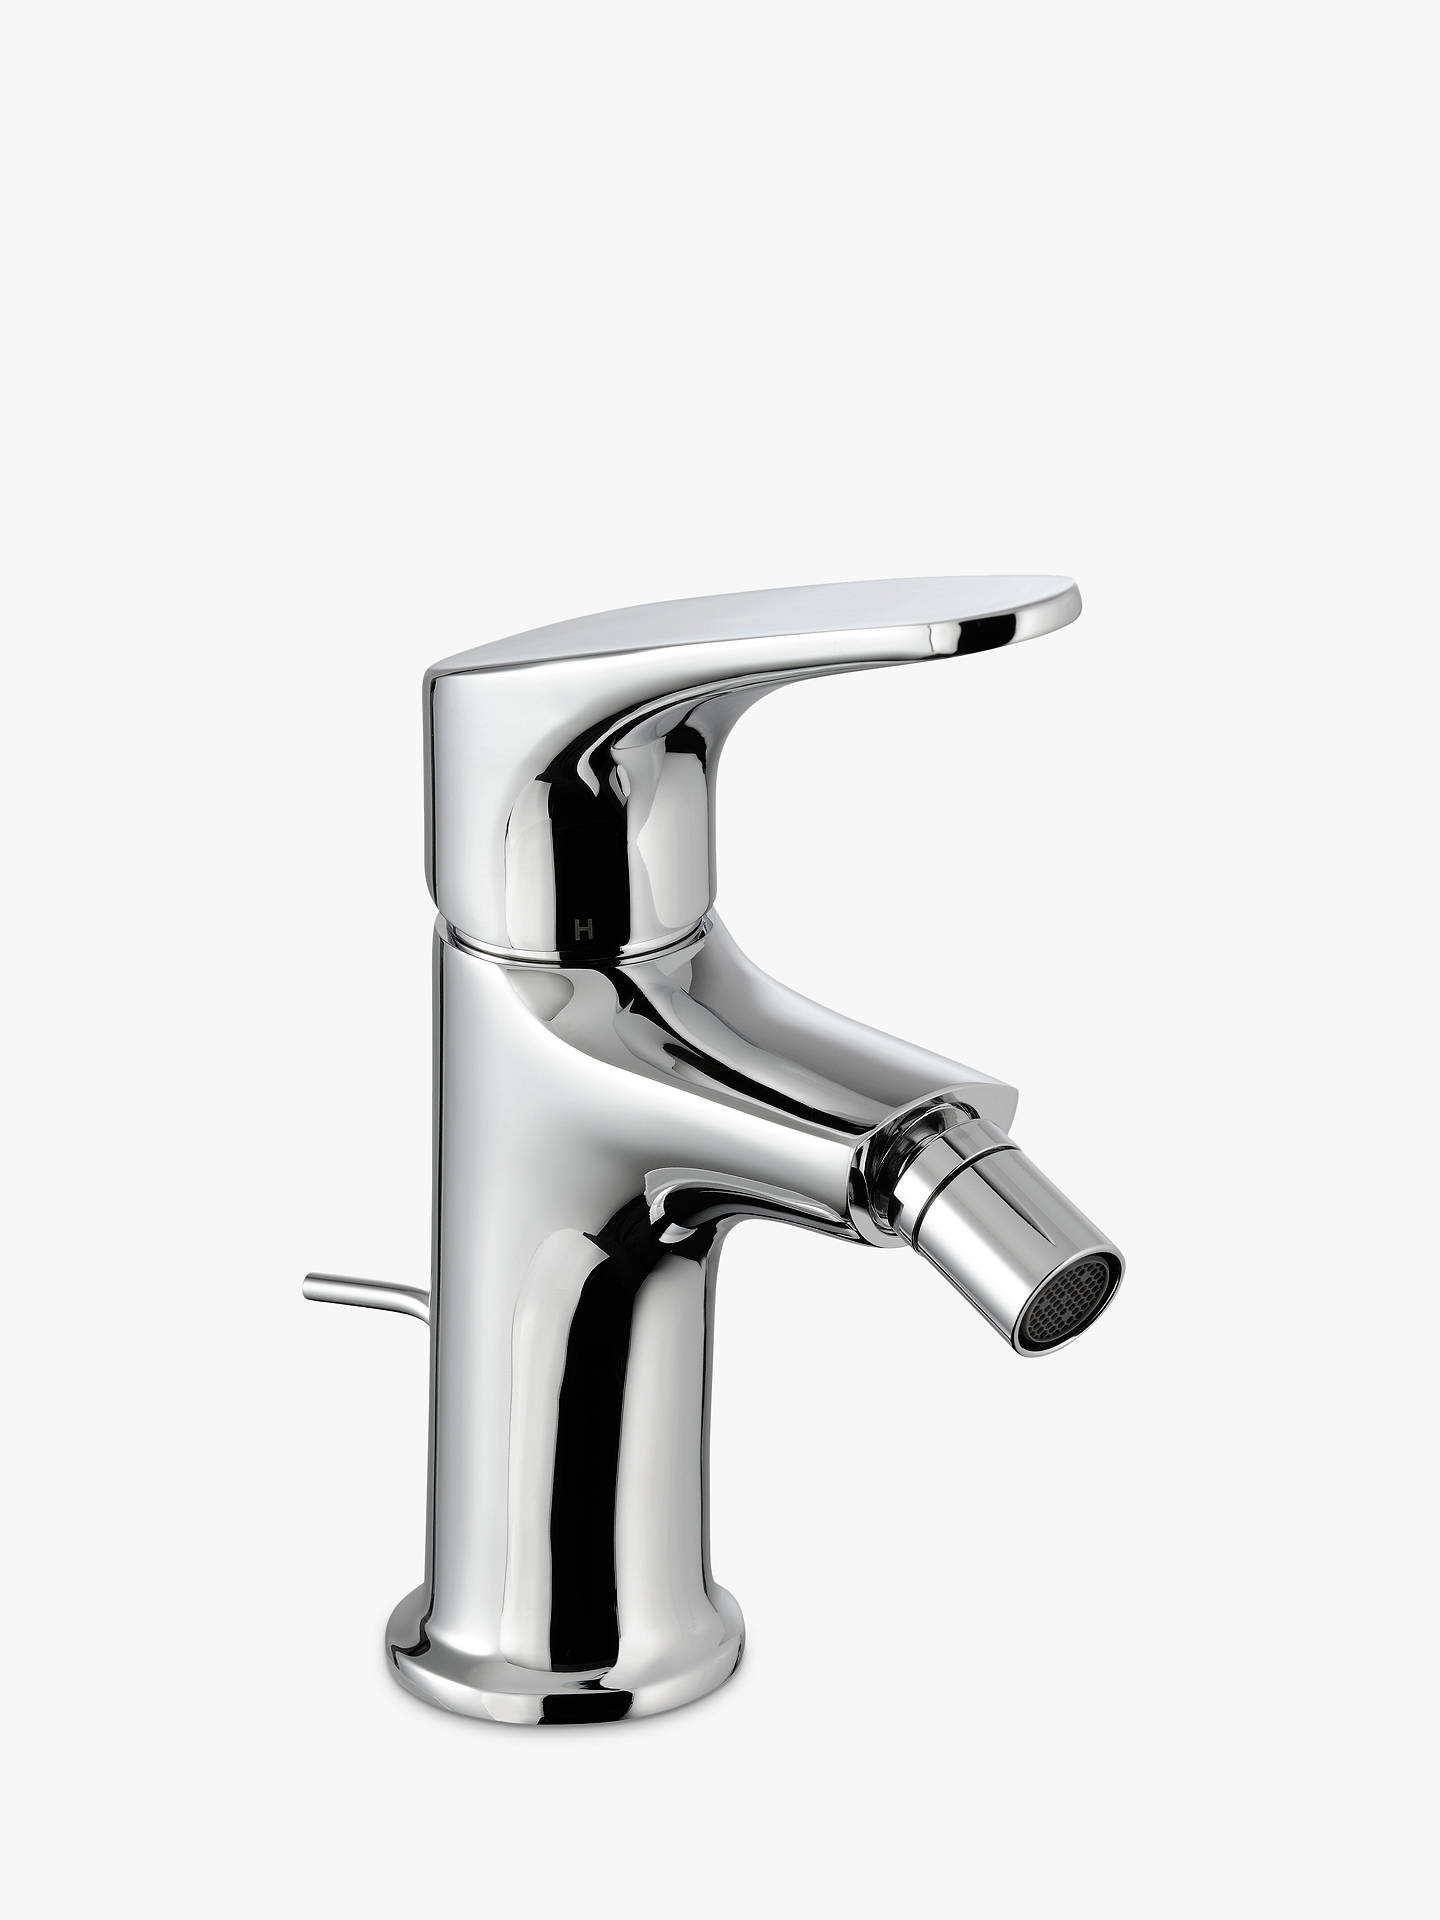 BuyJohn Lewis & Partners Eden Bidet Monobloc Mixer Tap With Pop Up Waste, Chrome Online at johnlewis.com